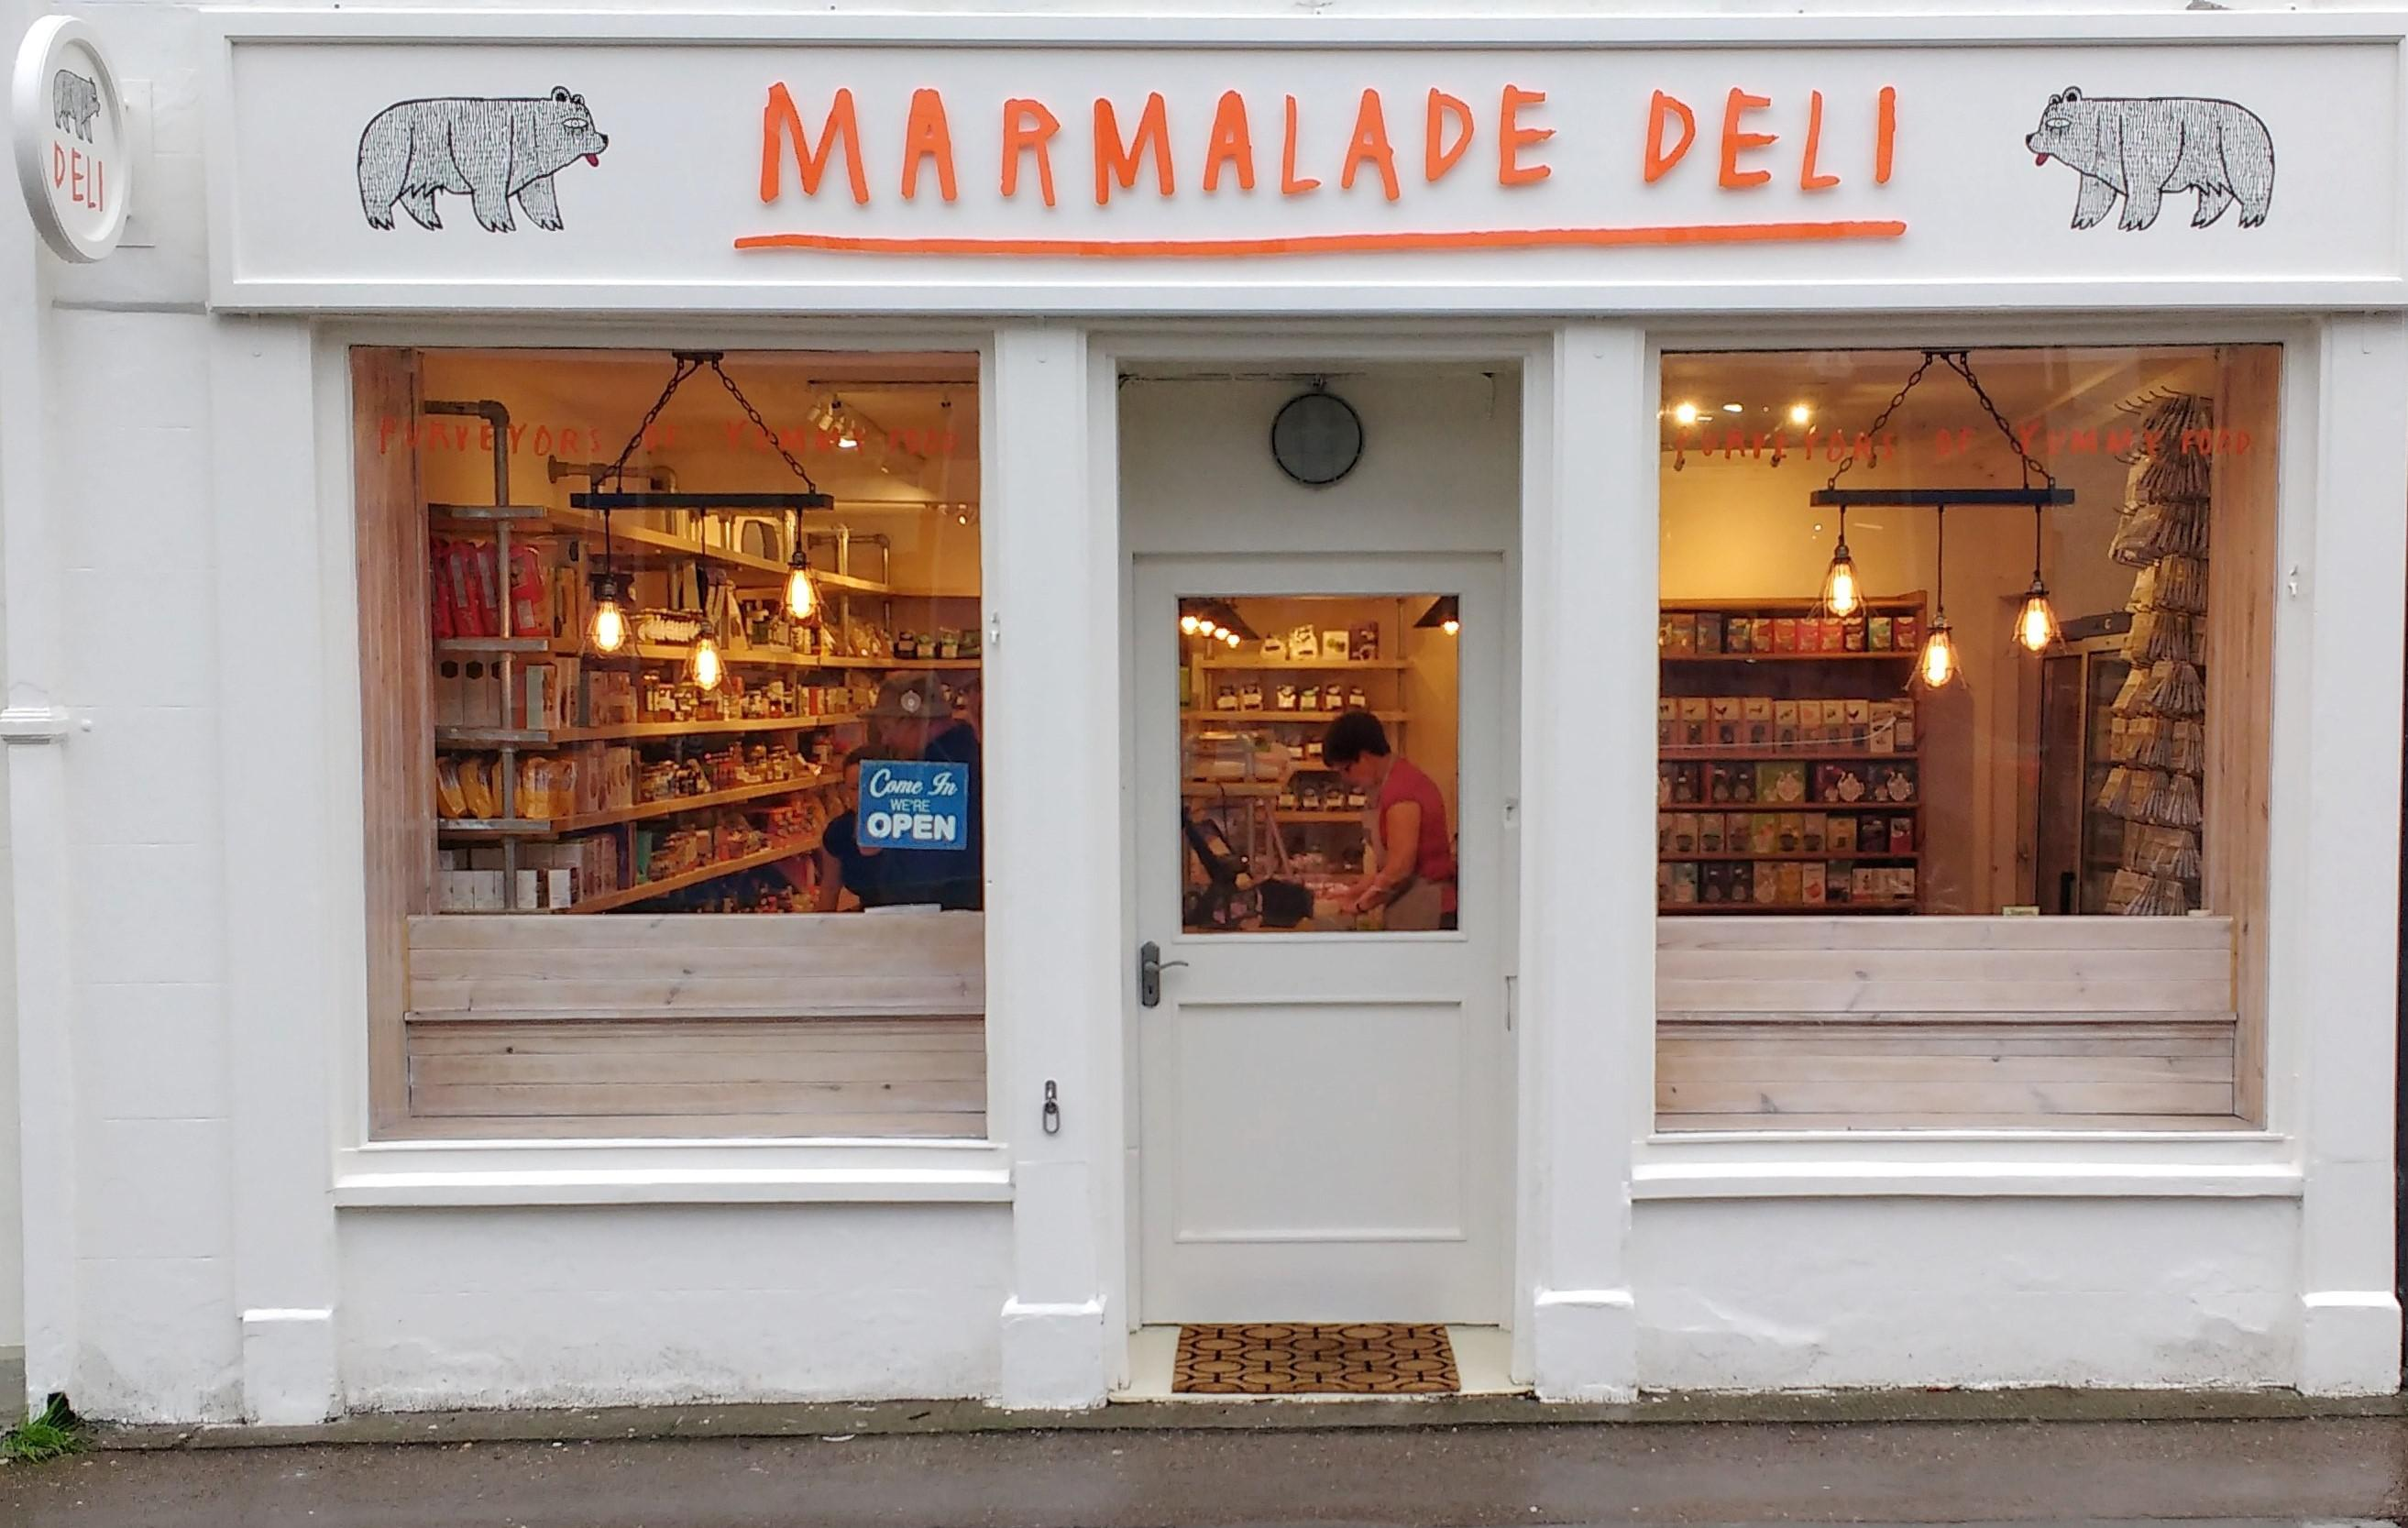 shop front view of Marmalade Deli